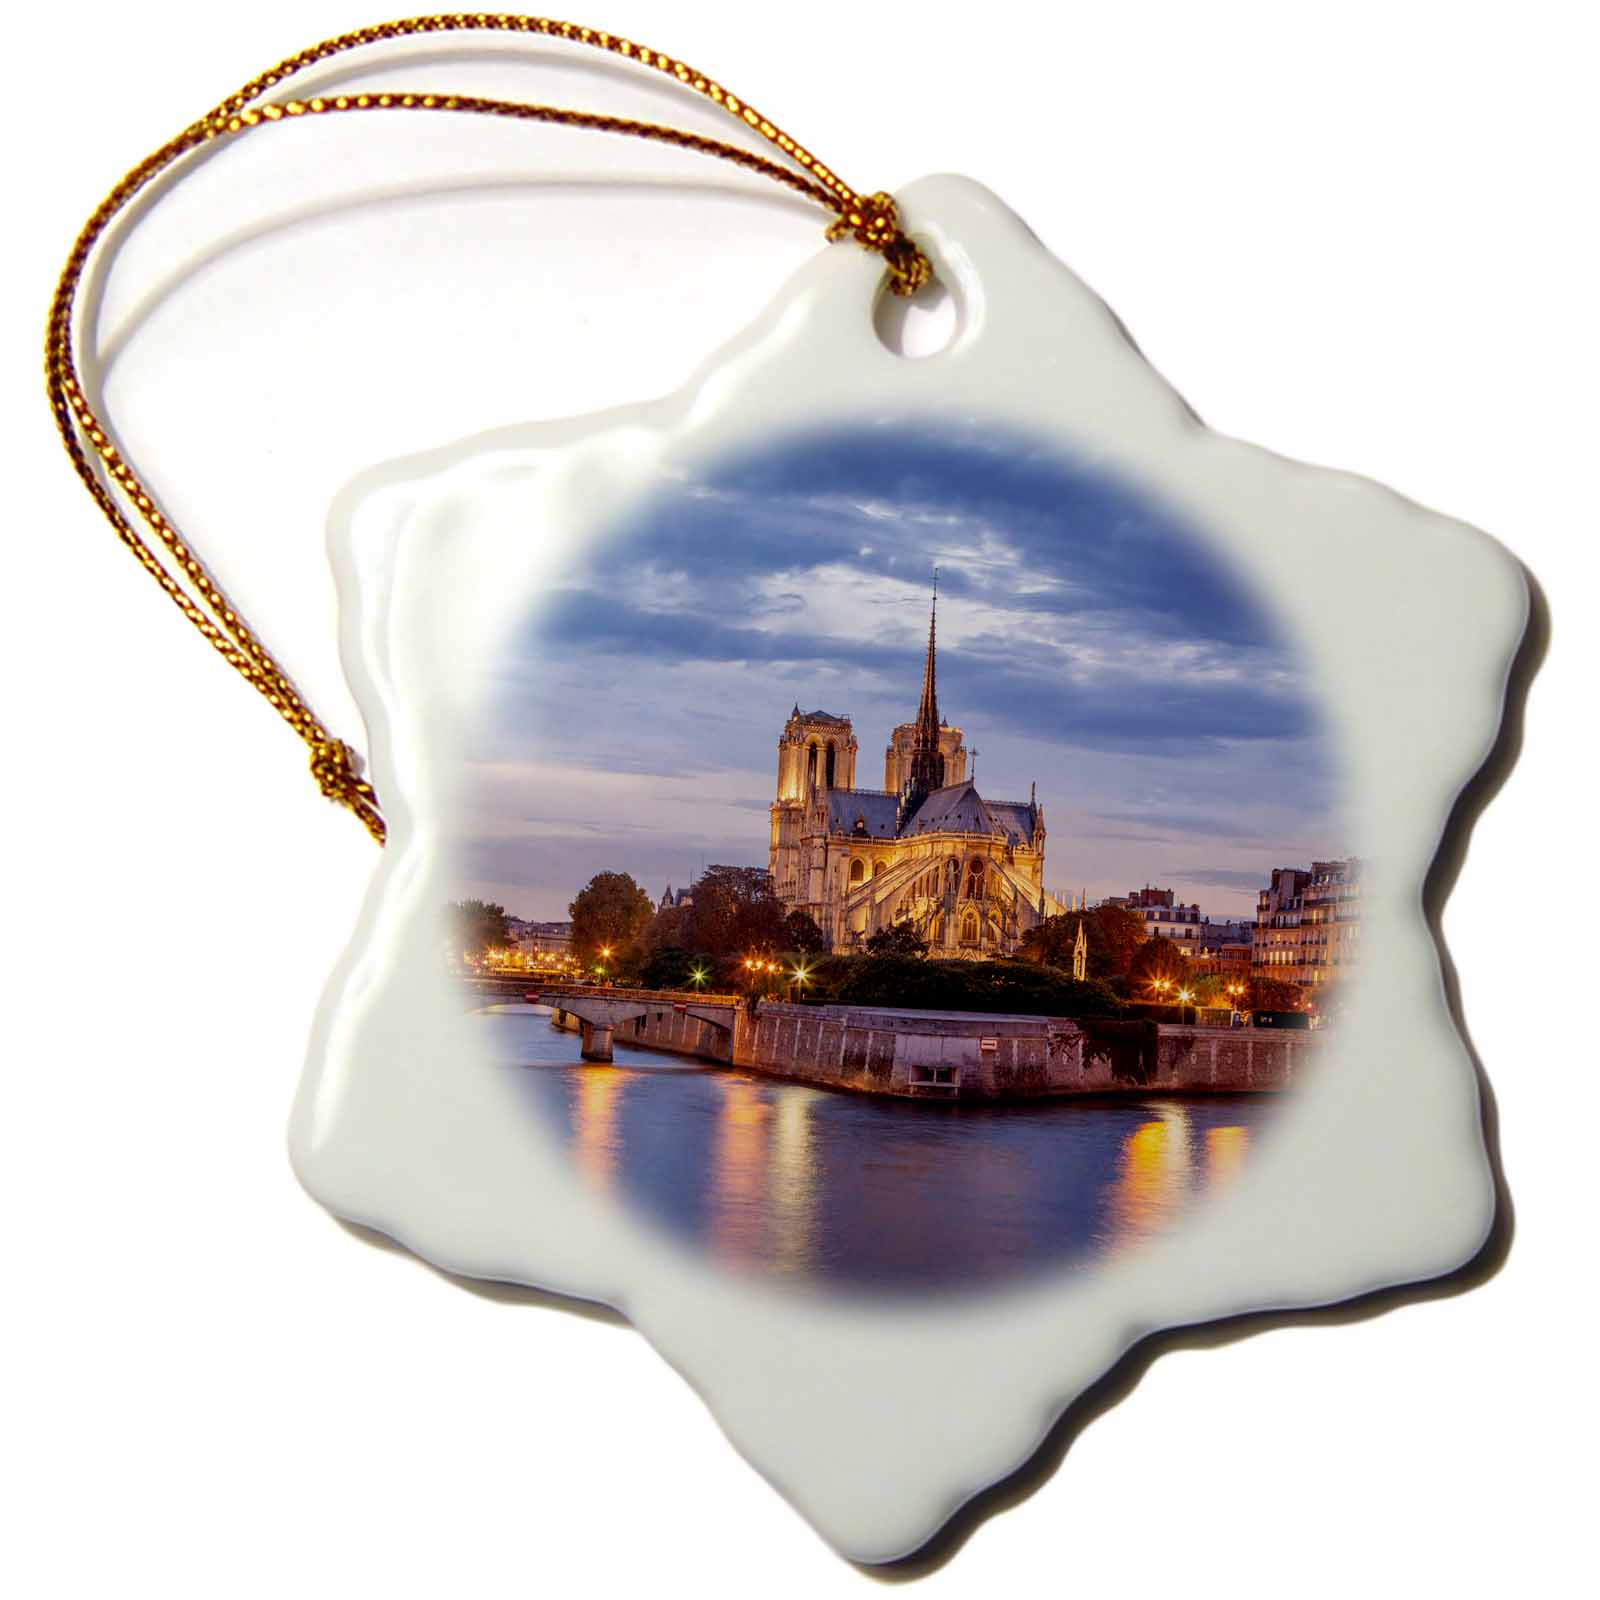 3dRose Cathedral Notre Dame and River Seine, Paris, France., Snowflake Ornament, Porcelain, 3-inch